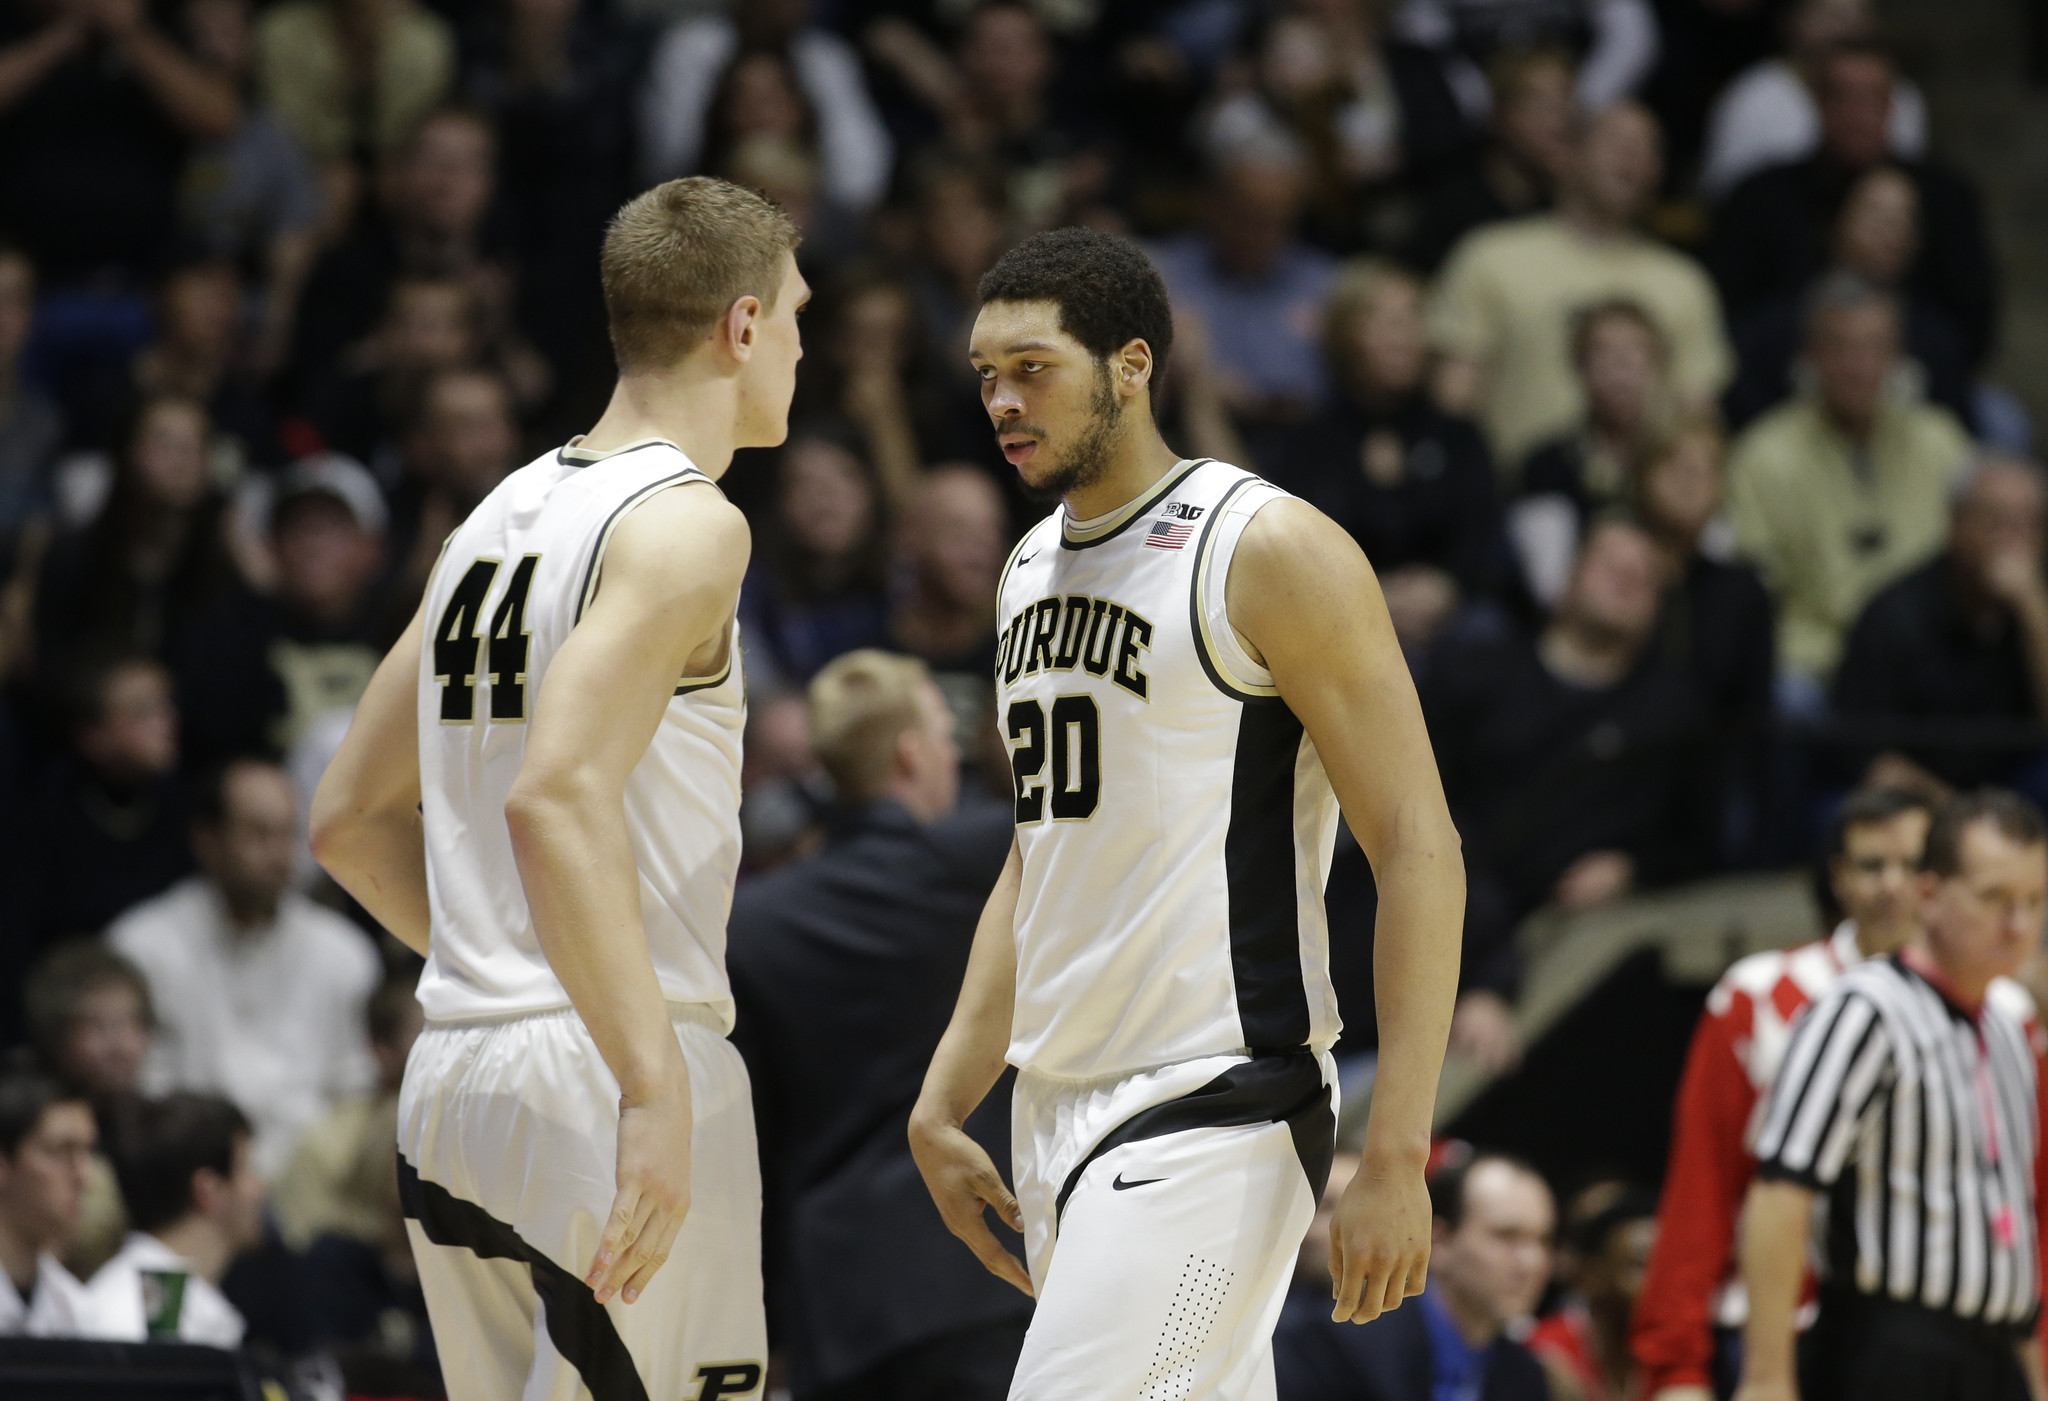 Bal-maryland-basketball-faces-big-challenge-from-boilermakers-massive-frontcourt-20160205